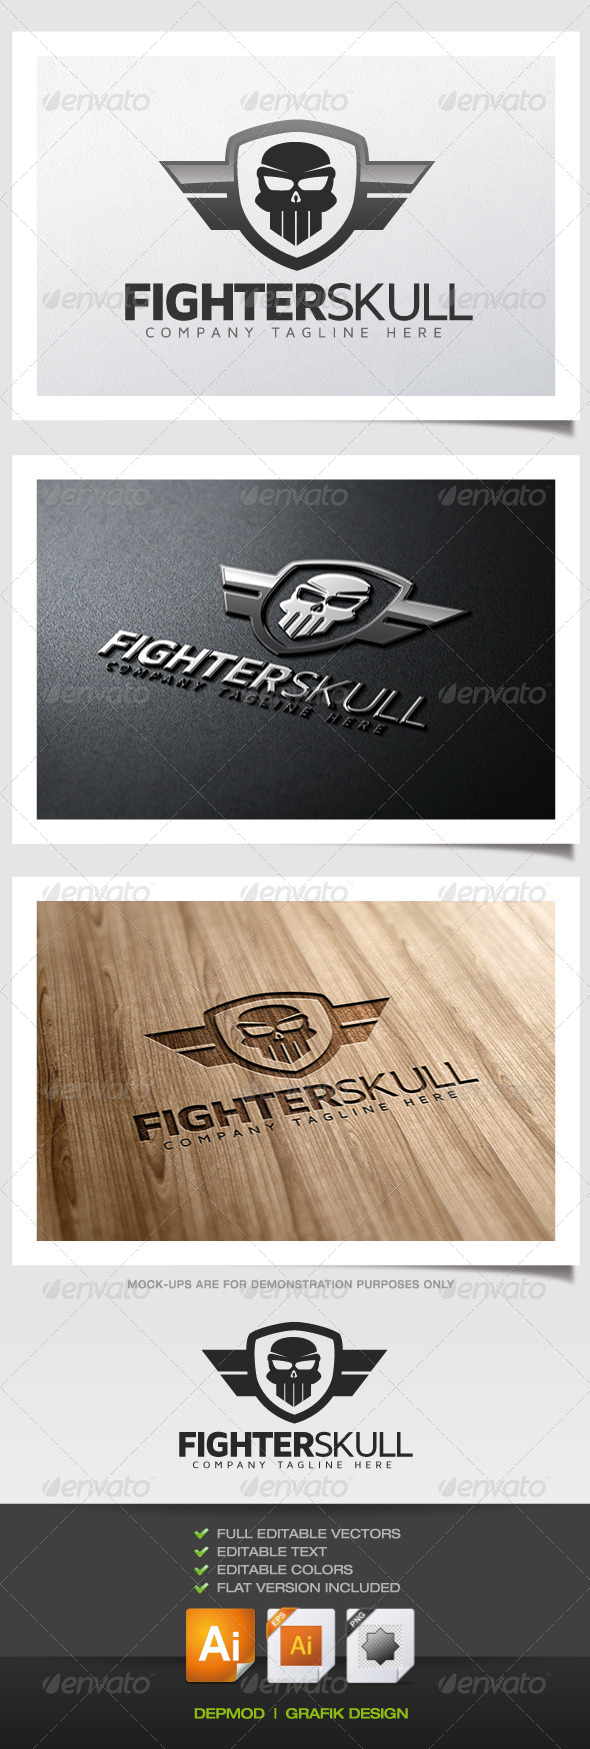 Fighter Skull Logo